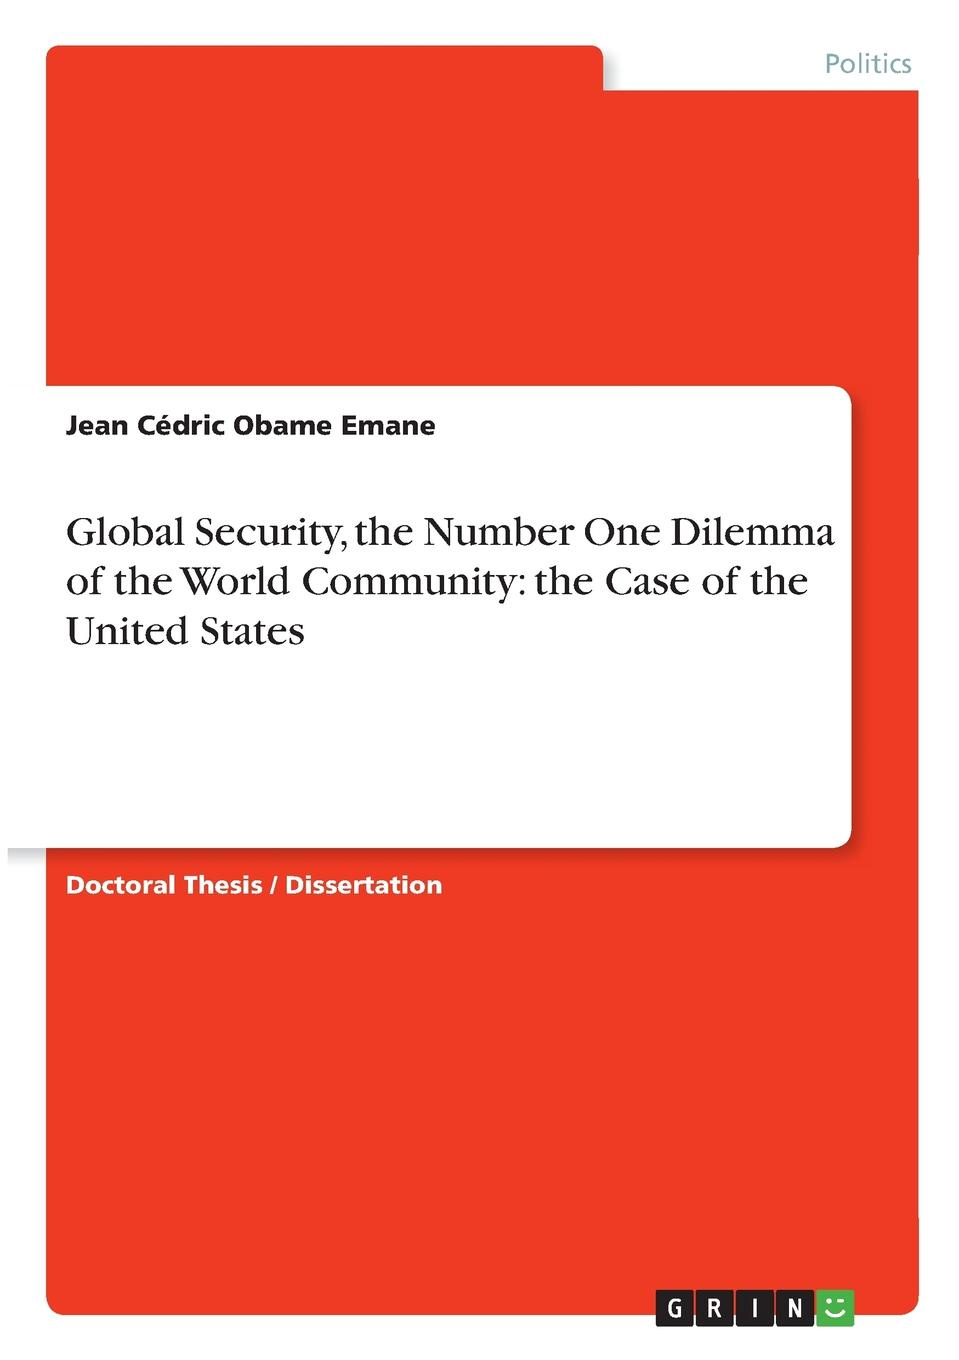 Jean Cédric Obame Emane Global Security, the Number One Dilemma of the World Community. the Case of the United States private military security companies